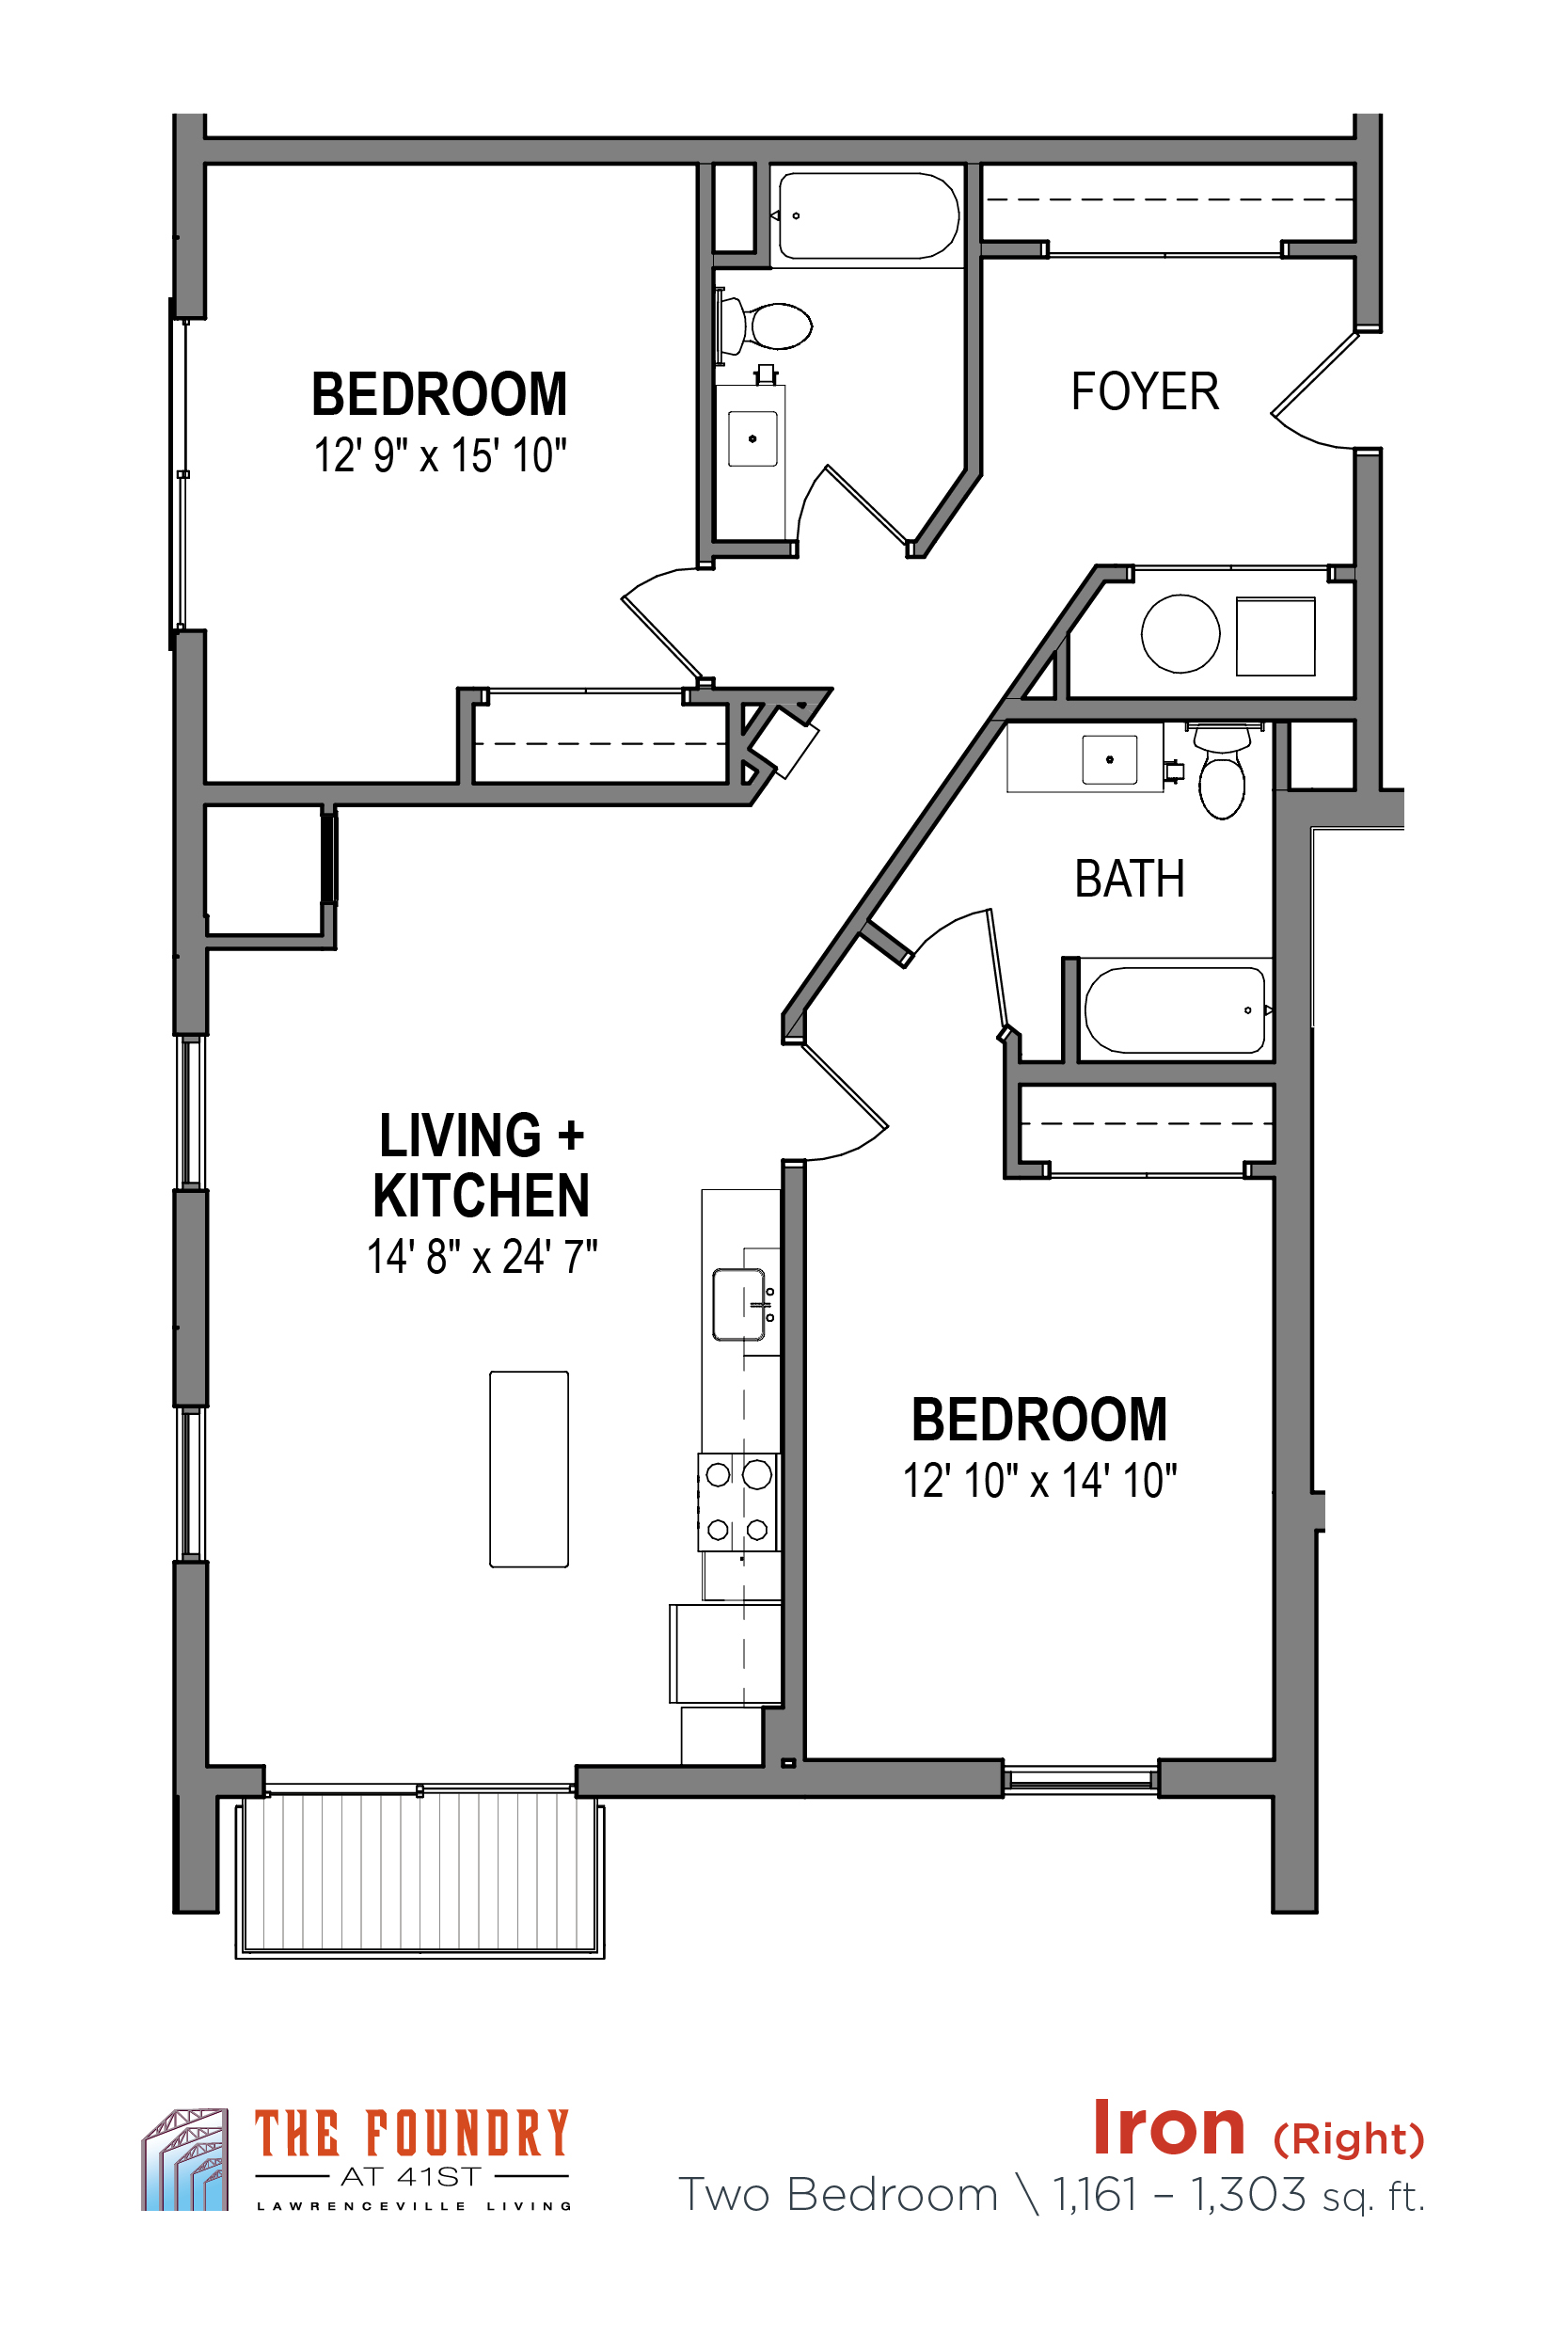 Studio, 1 & 2 Bedroom Apartments | The Foundry at 41st | Floor Plans